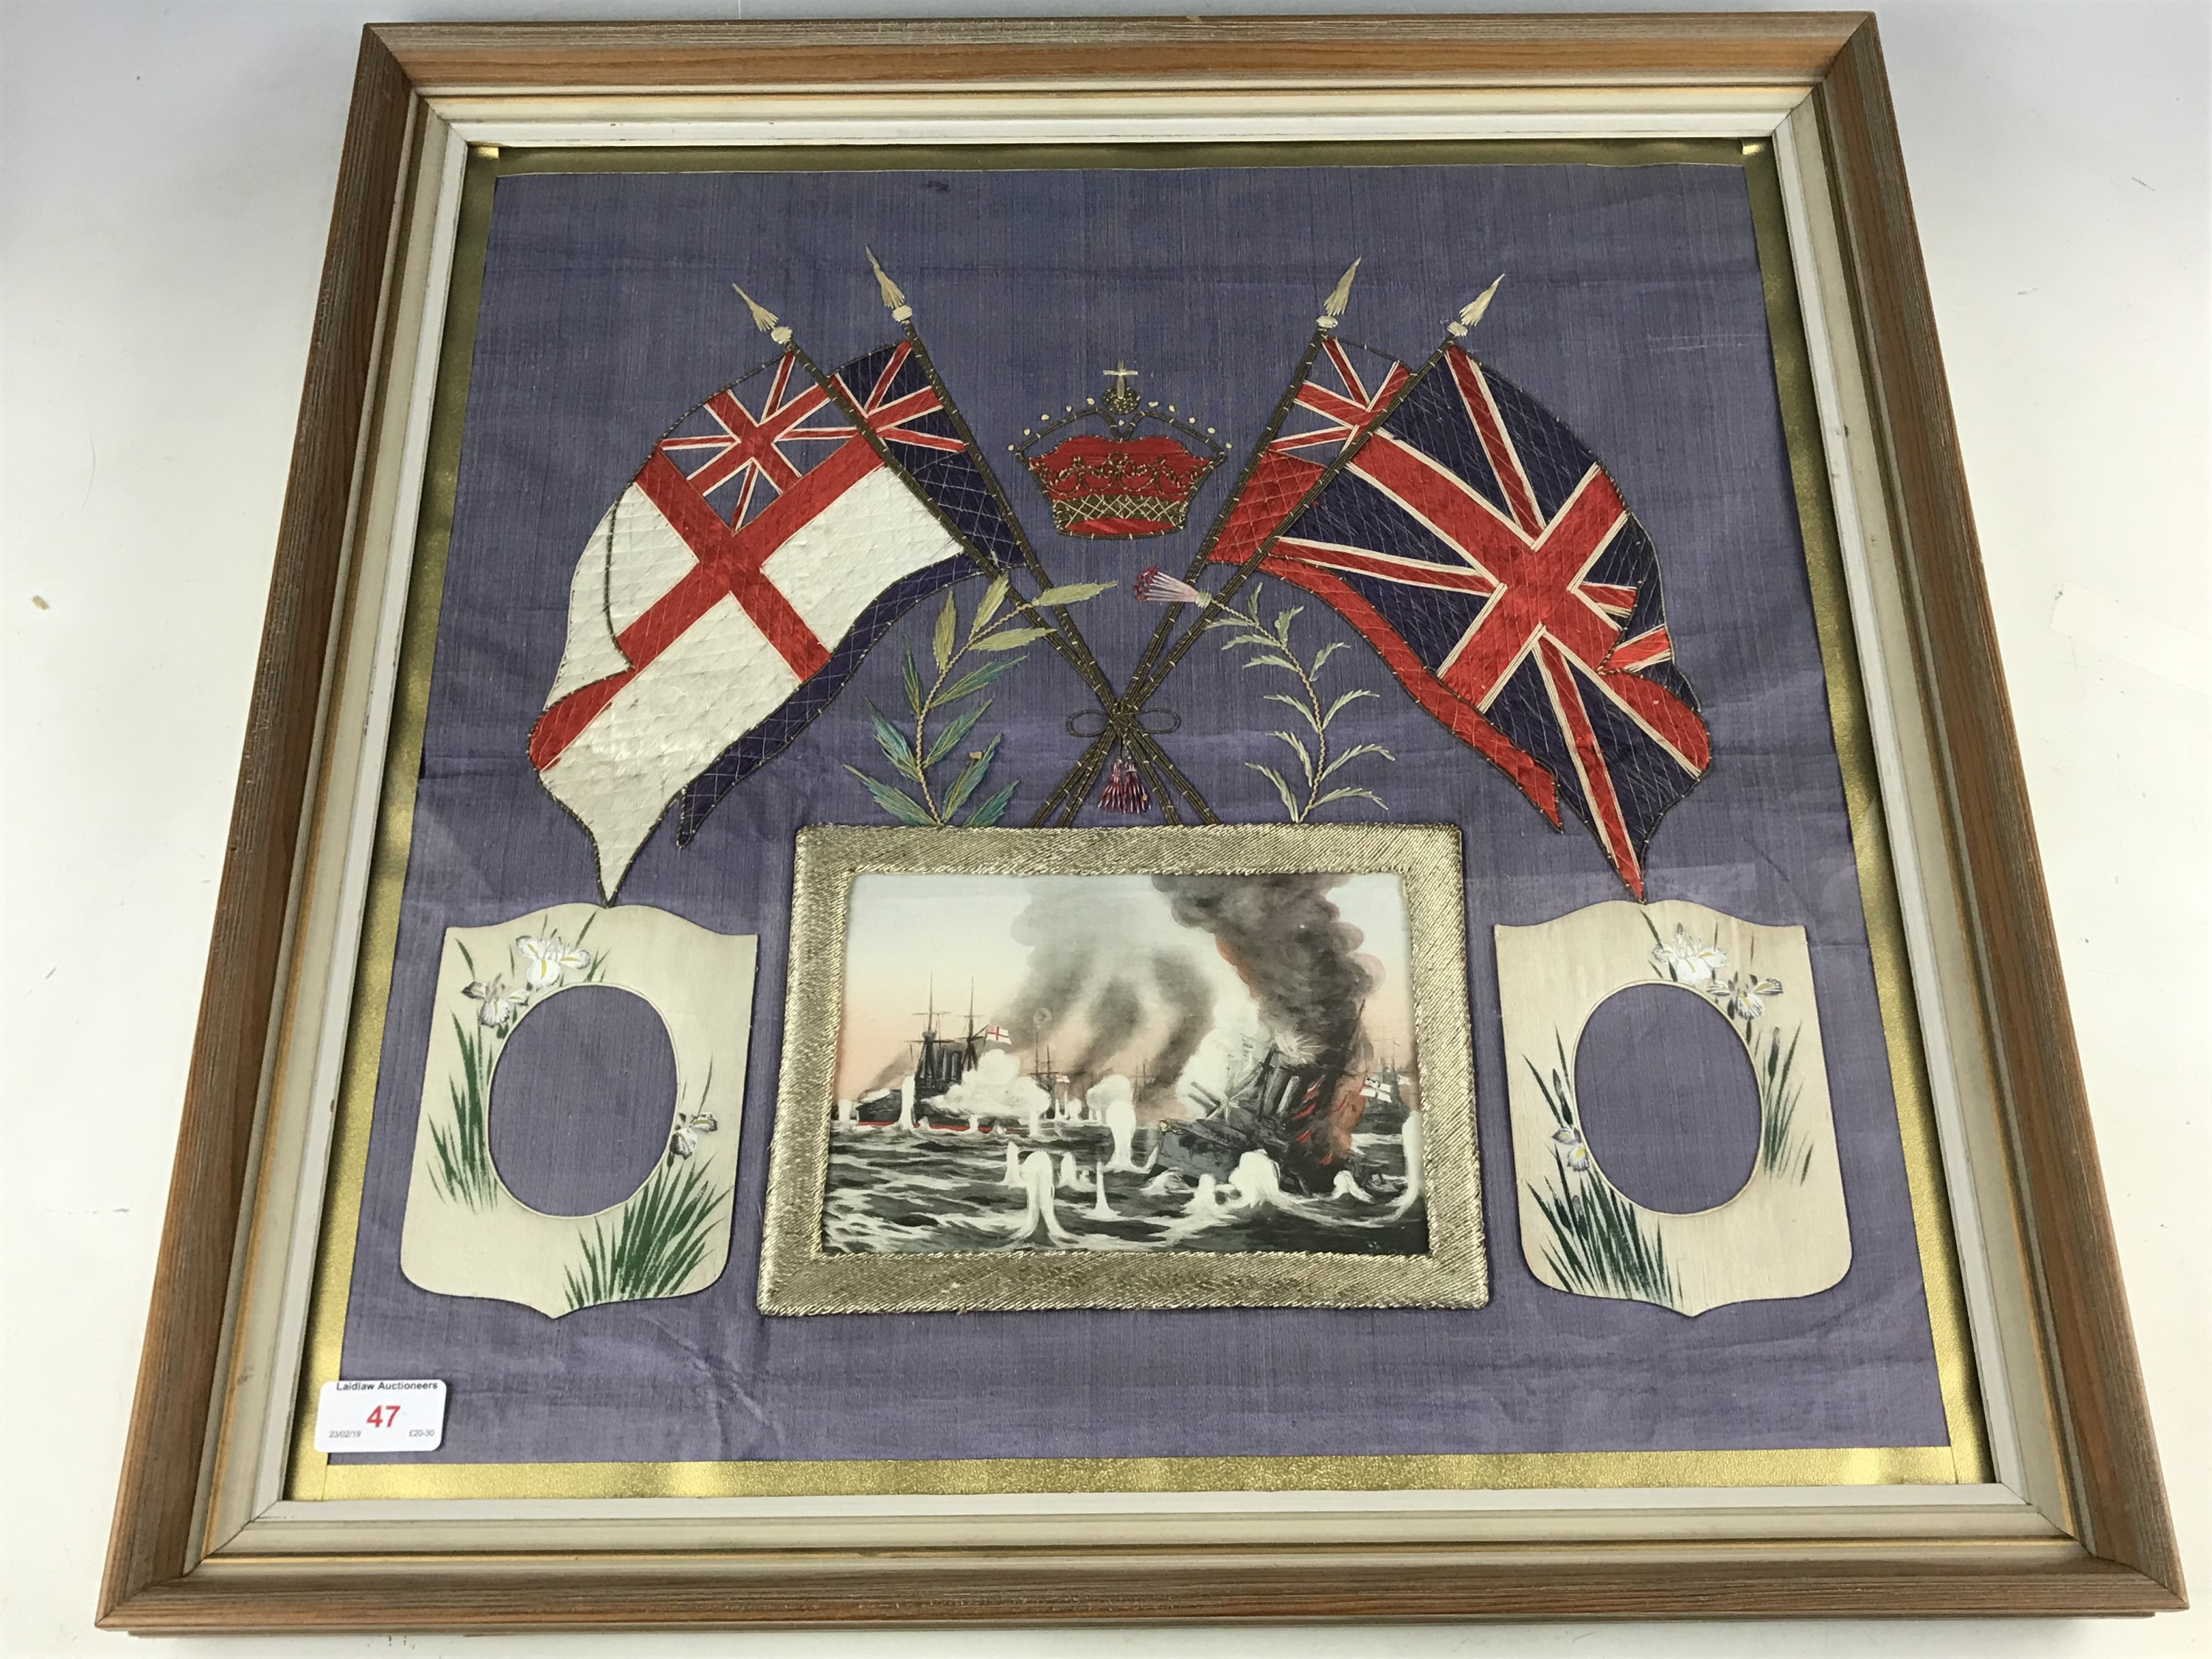 Lot 47 - A Great War military silk embroidery, framed under glass, 60 cm x 60 cm